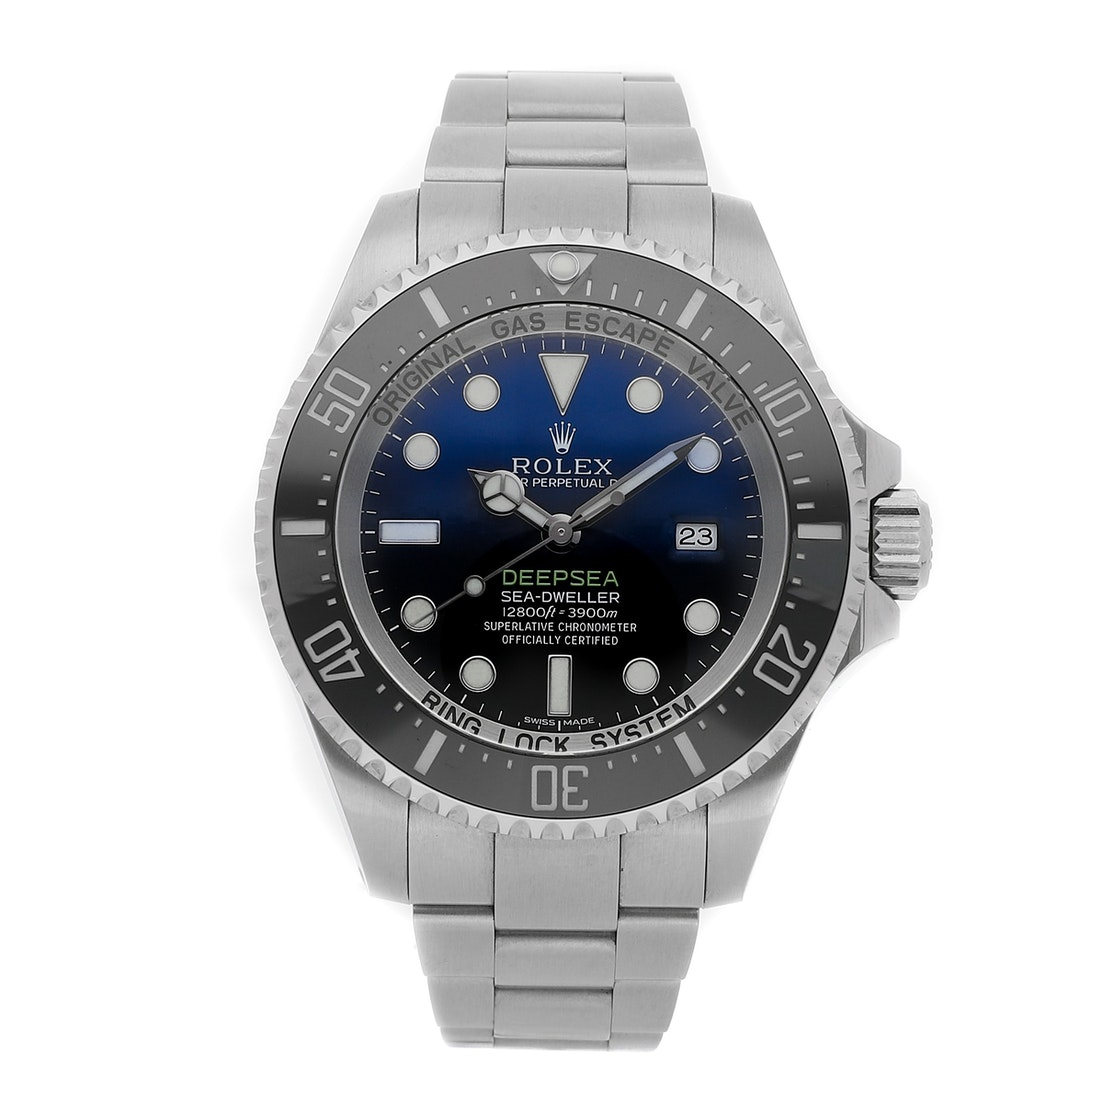 Now Playing: Blue Rolex Watches You Can Actually Buy